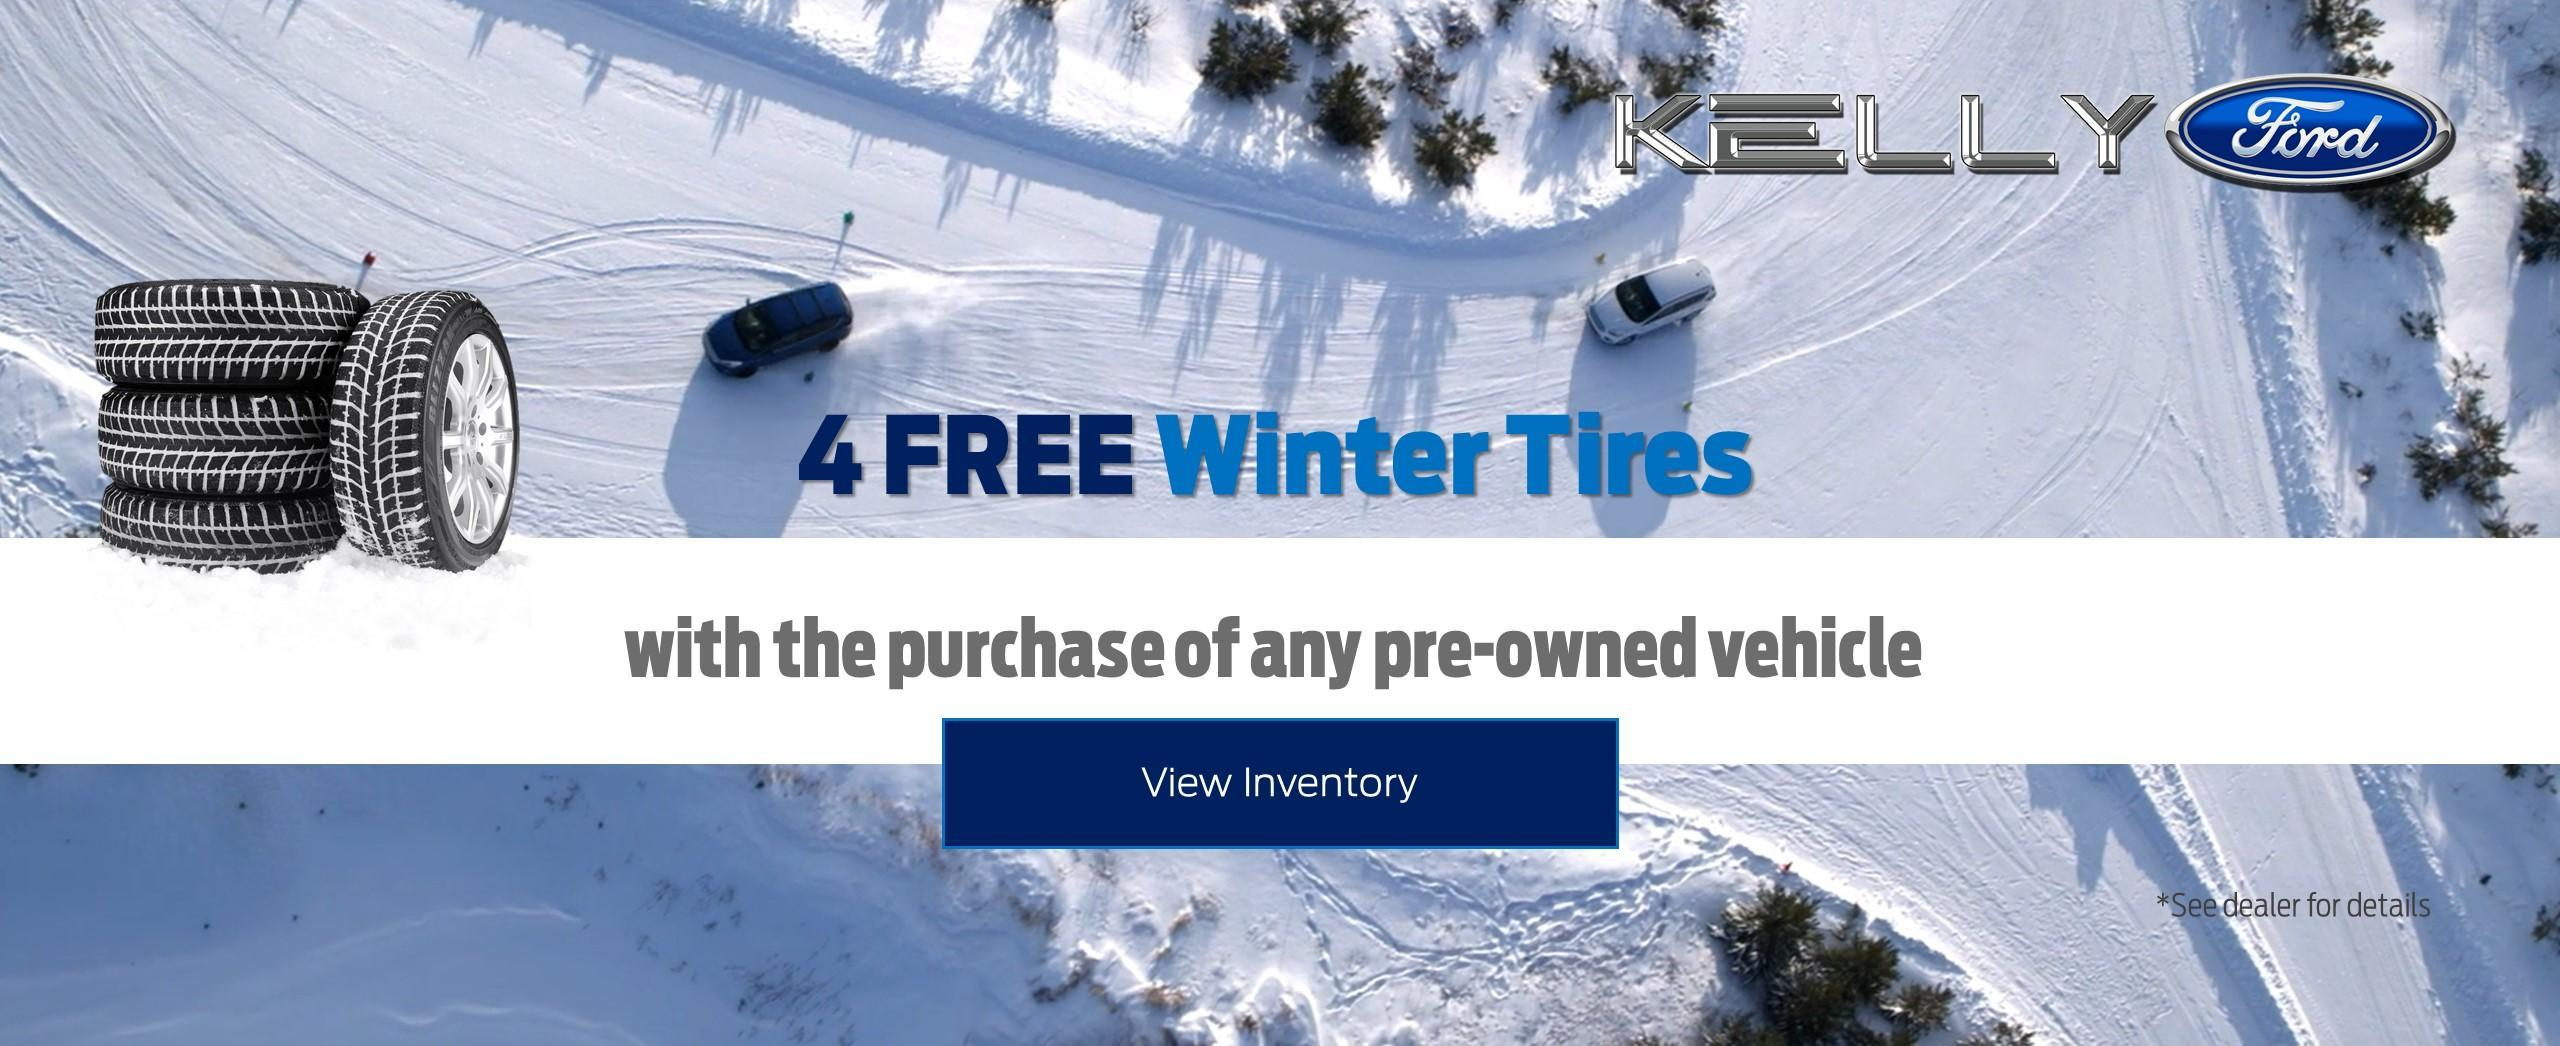 Free winter tires on purchase of pre-owned vehicle